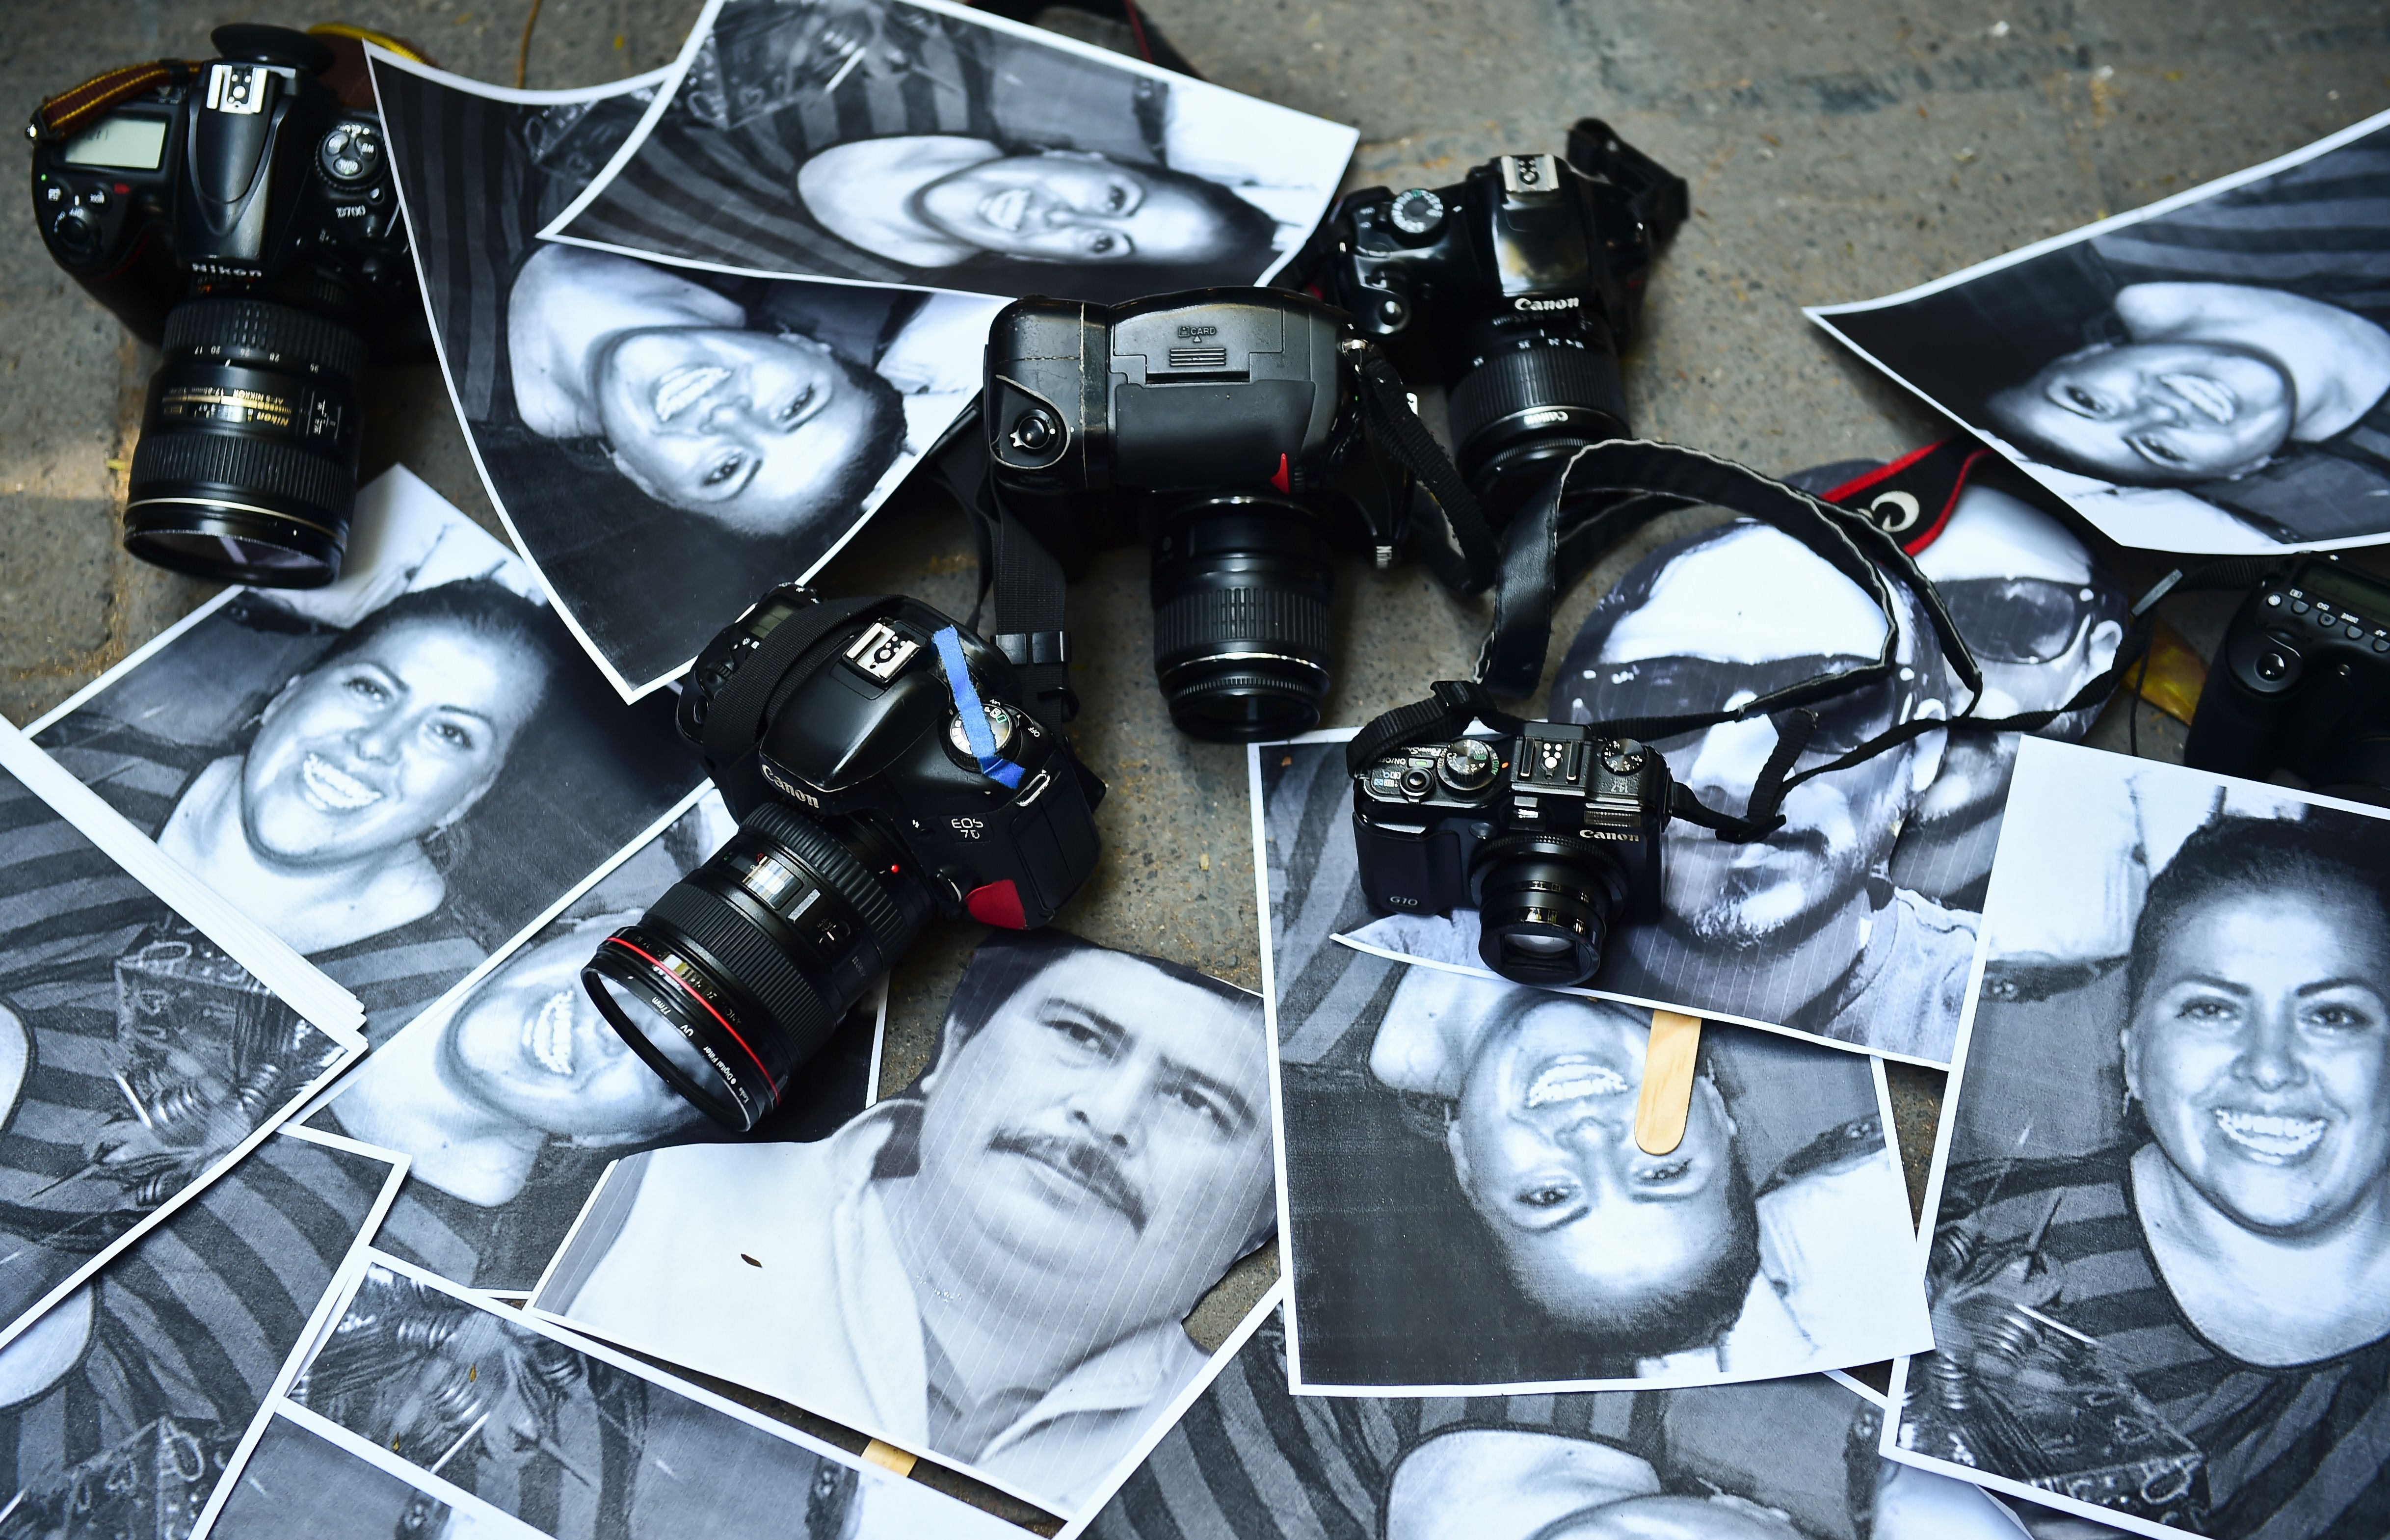 View of photos of killed journalists and cameras outside the Veracruz state representation office during a journalists protest in Mexico City on February 11, 2016. Mexican journalist Anabel Flores Salazar's funeral took place Wednesday after she was found killed at a road after being kidnapped Monday in Veracruz state, one of the most dangerous for journalists.  AFP PHOTO/RONALDO SCHEMIDT / AFP / RONALDO SCHEMIDT        (Photo credit should read RONALDO SCHEMIDT/AFP/Getty Images)